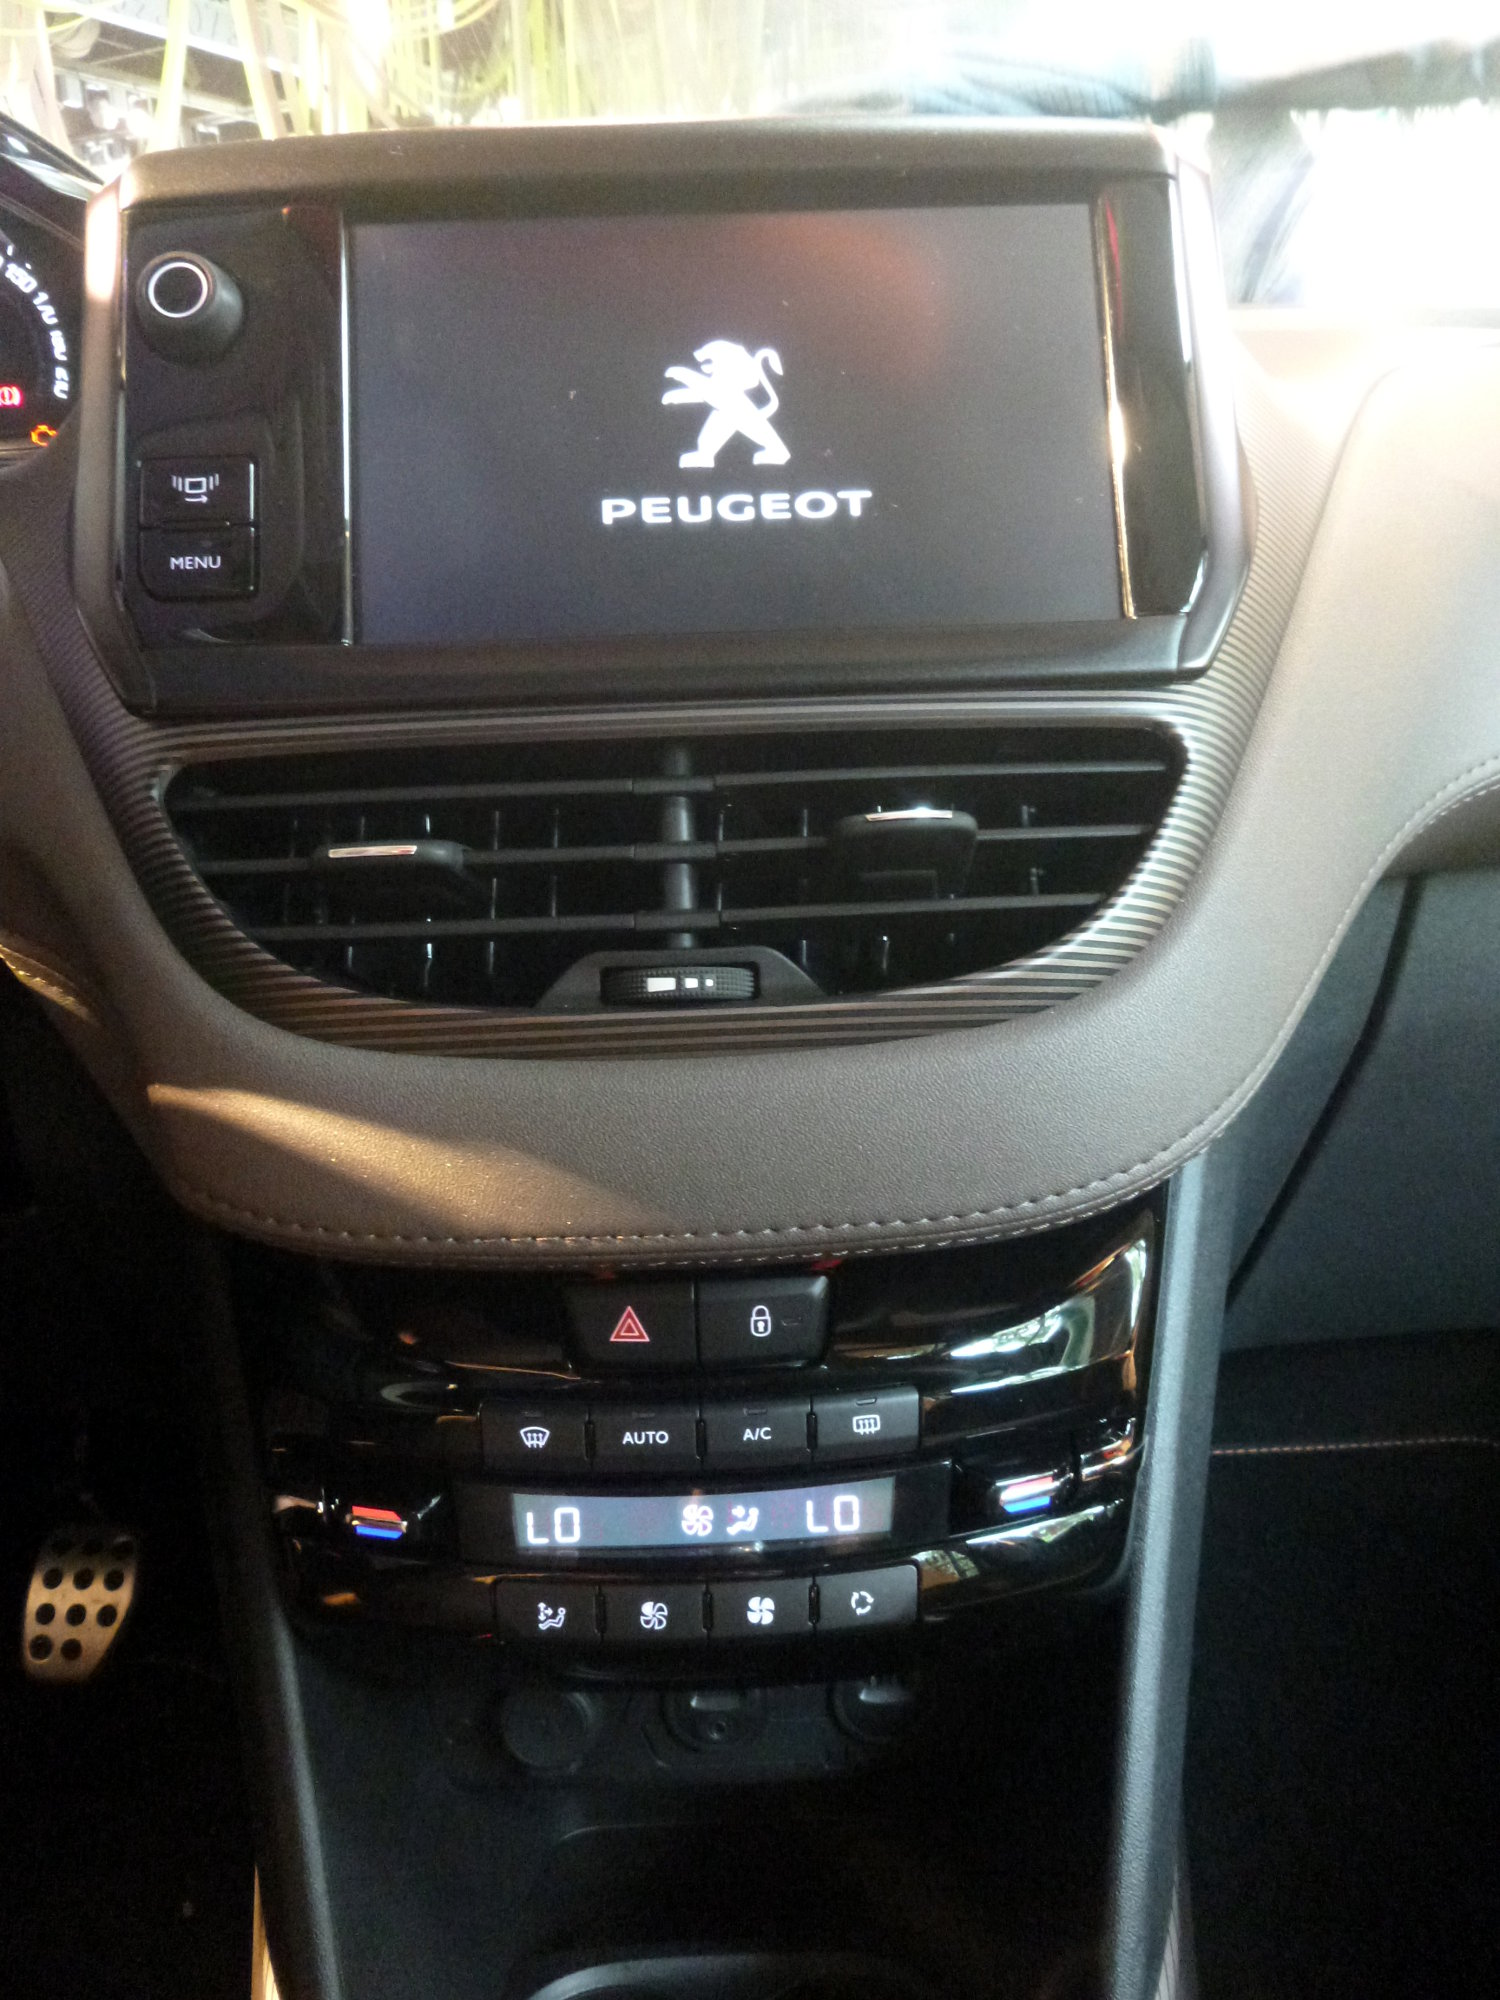 Peugeot-2008-crossover-suv-interior-painel-tela-LCD